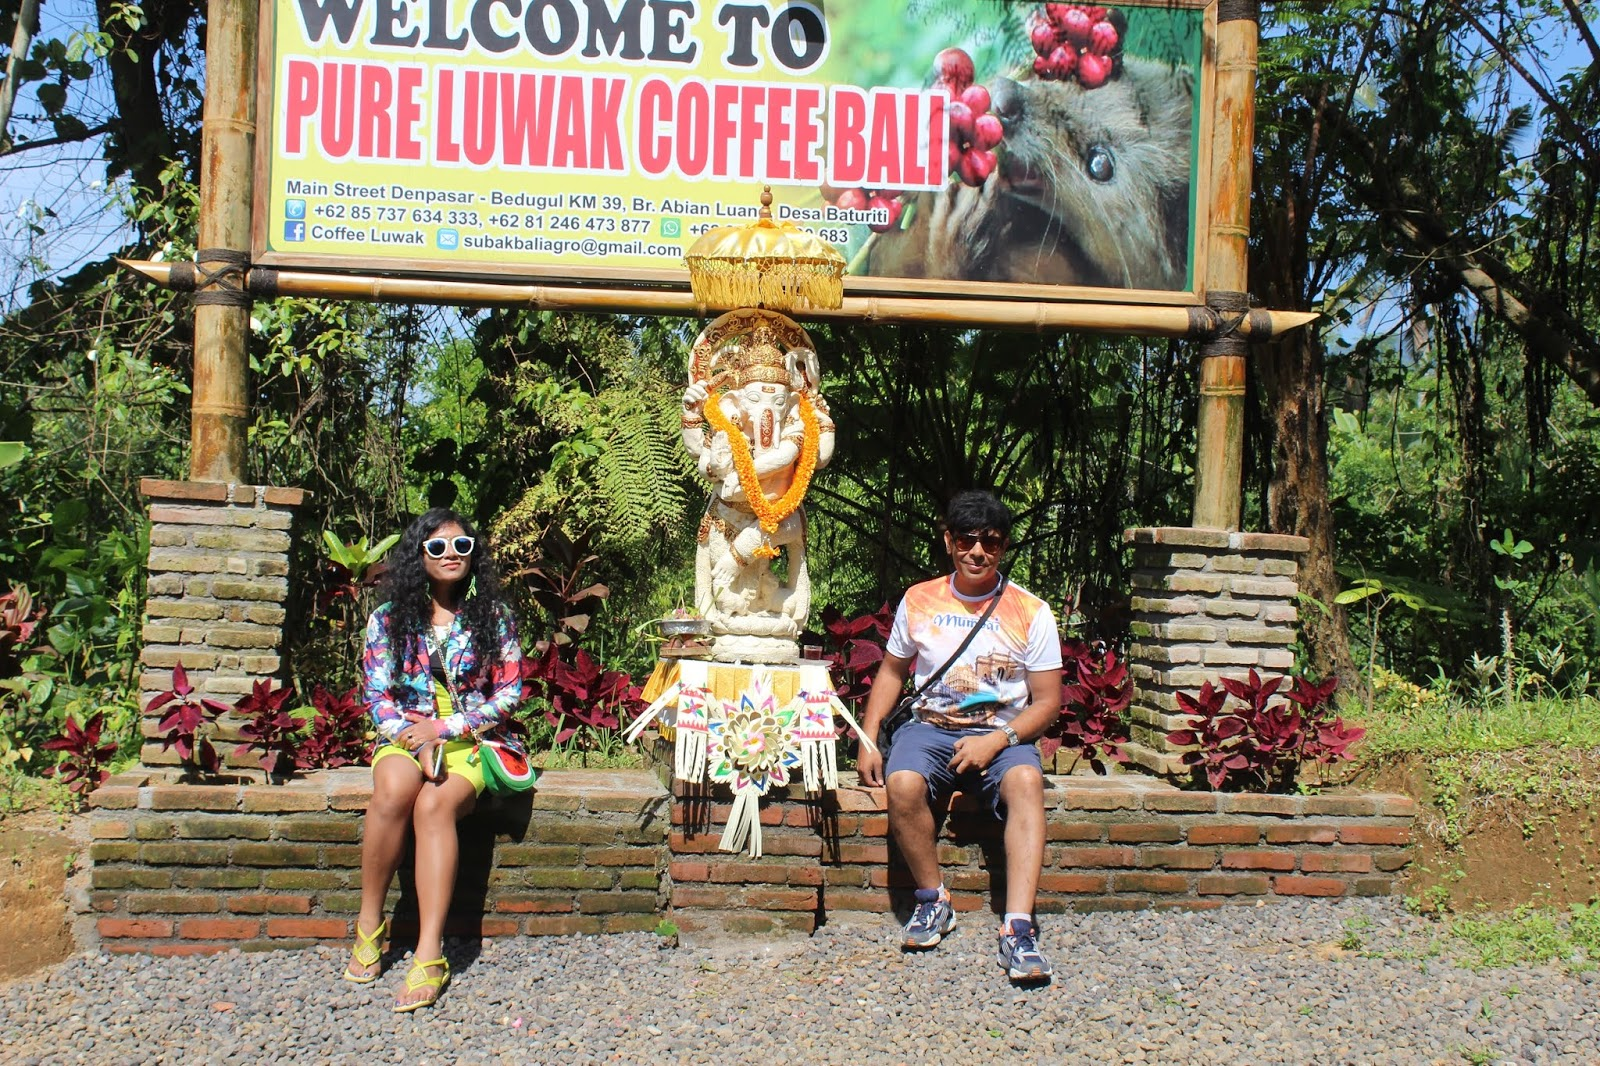 luwak coffee price  kopi ,luwak coffee amazon , luwak coffee bali  kopi, luwak coffee for sale,  luwak coffee process,  luwak coffee benefits,  kopi luwak coffee beans,  best luwak coffee brand